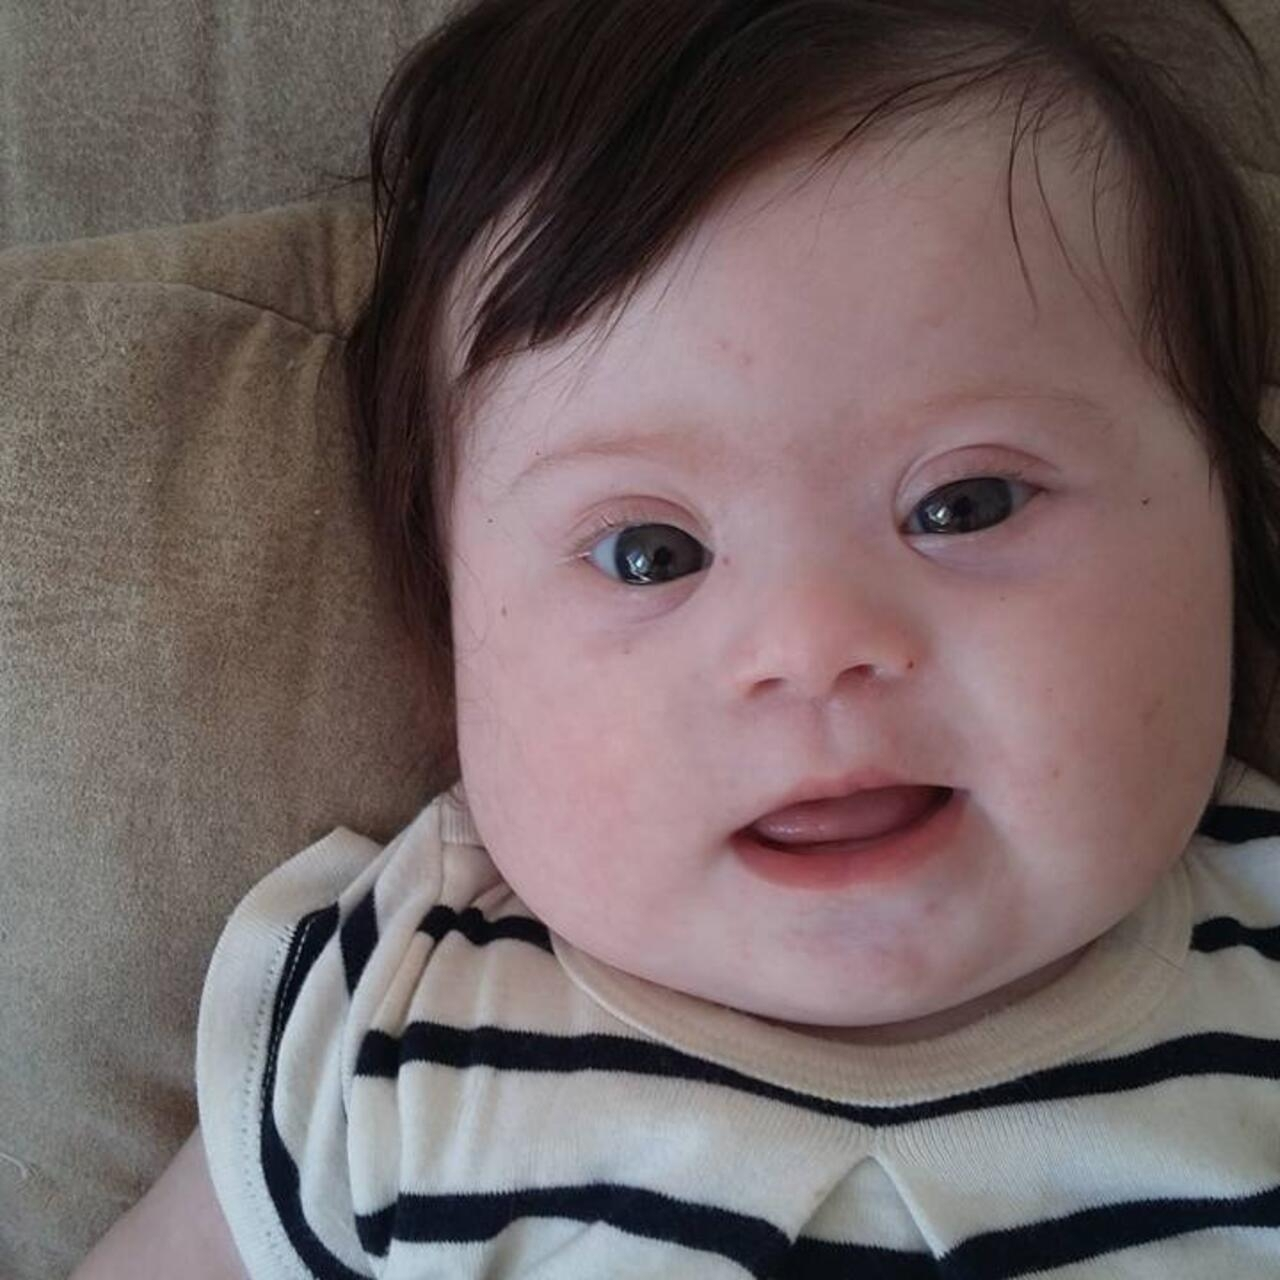 French mother's Facebook post on her baby's Down syndrome goes viral